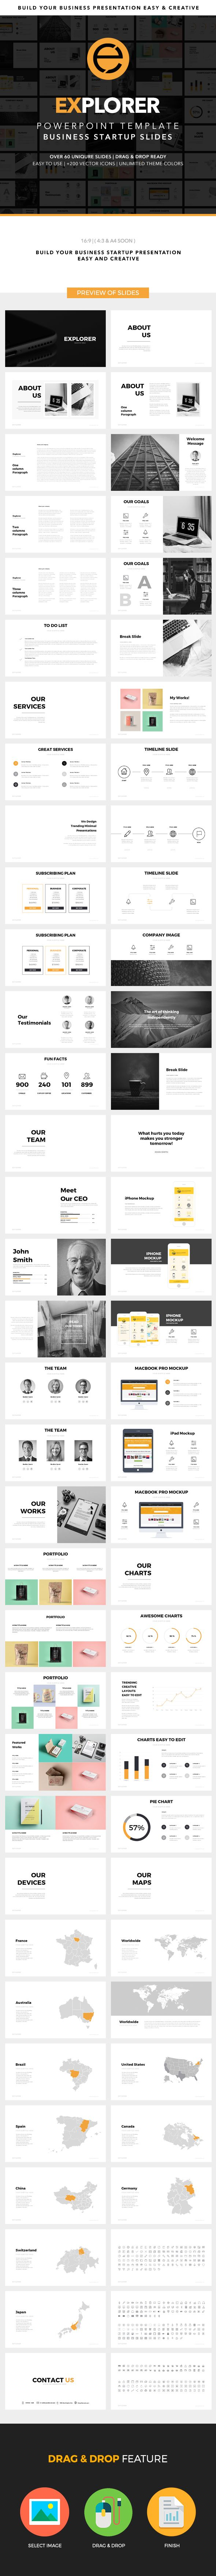 Explorer #Powerpoint Template - #Business PowerPoint #Templates Download here:  https://graphicriver.net/item/explorer-powerpoint-template/19266788?ref=alena994